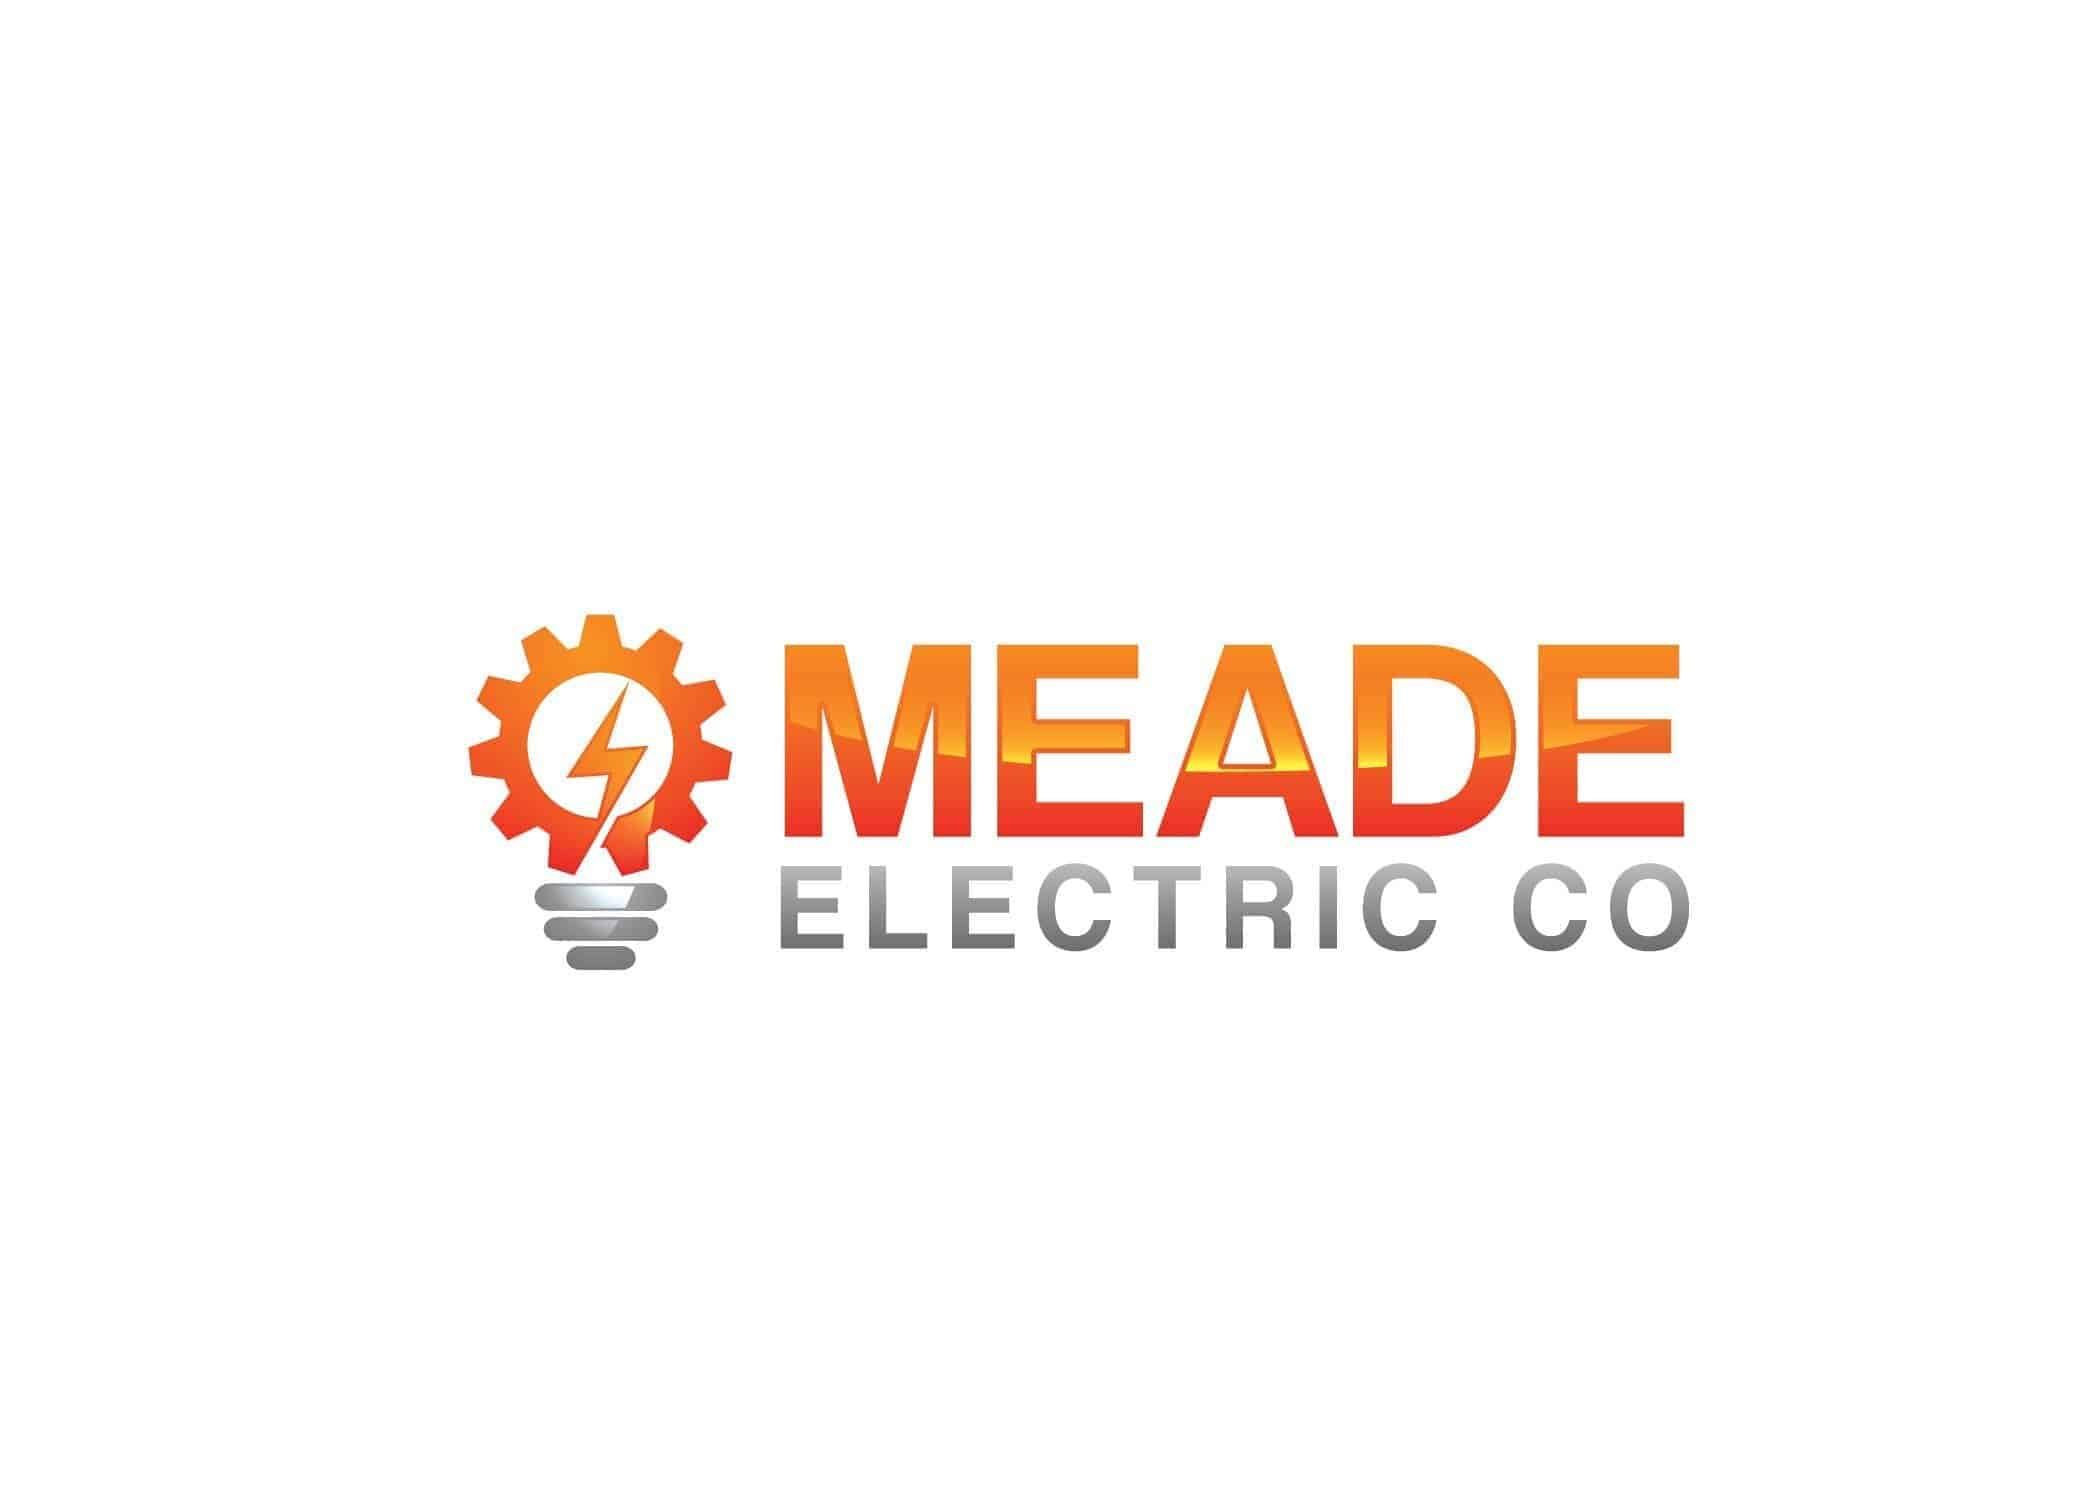 Meade Electric Co